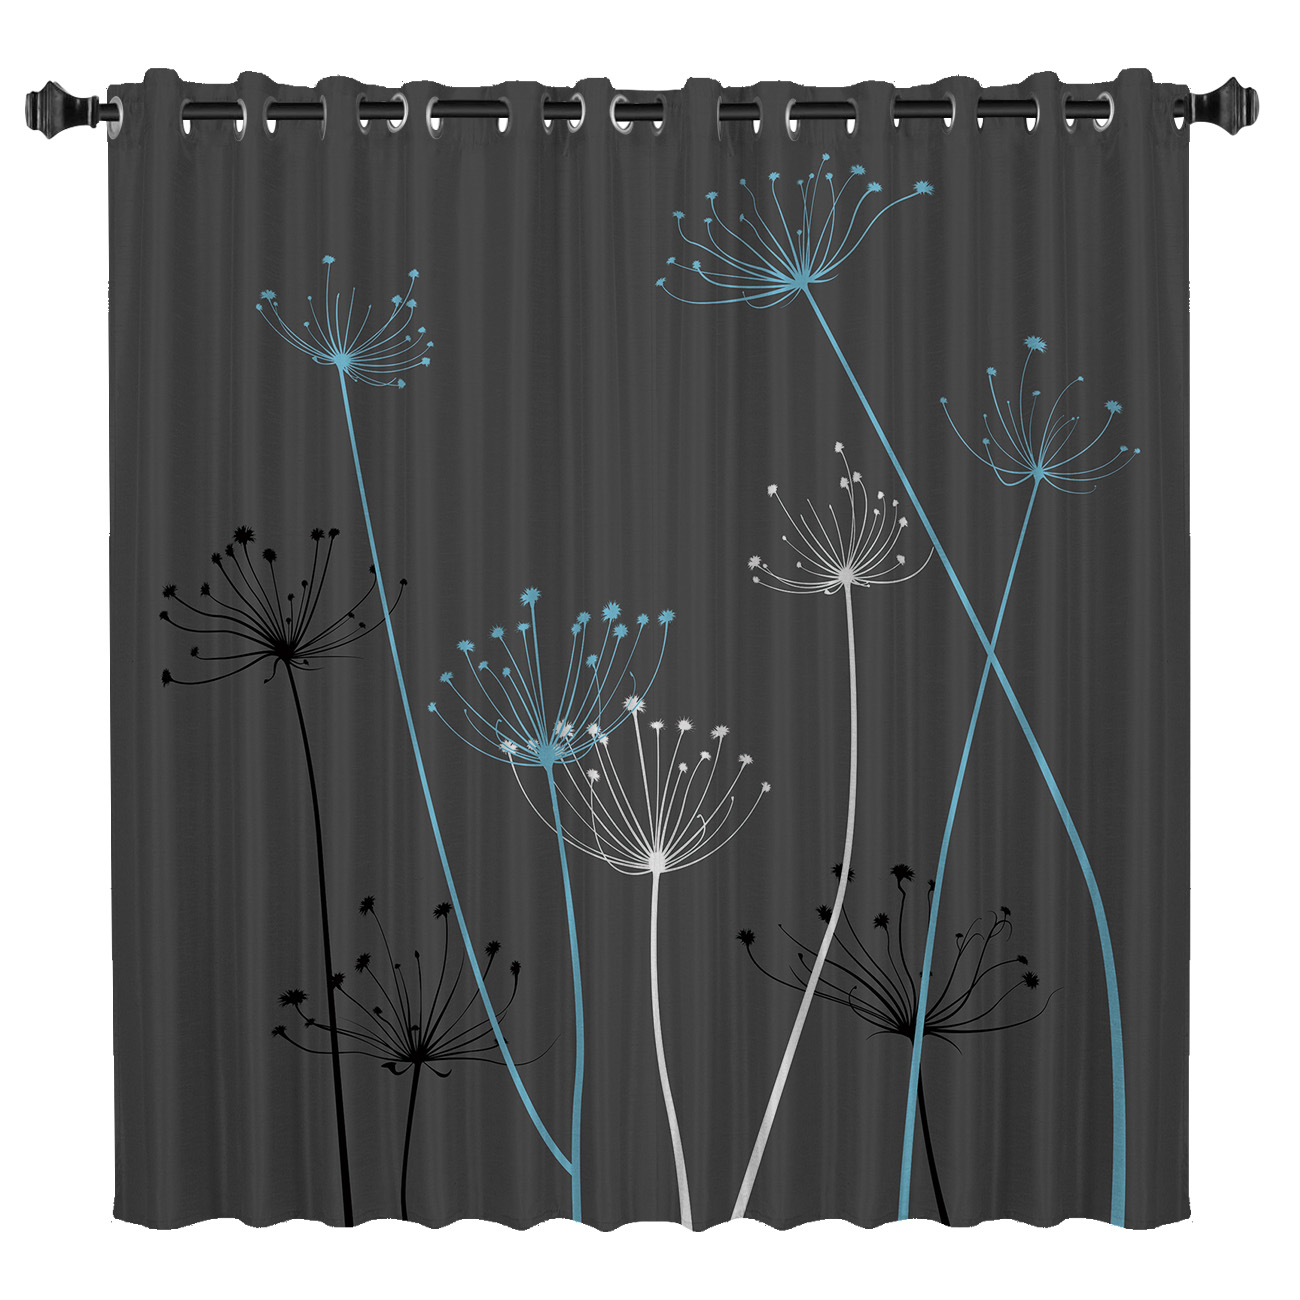 Plant Pattern With Light Window Treatments Curtains Valance Room Curtains Large Window Window Curtains Dark Window Blinds Living